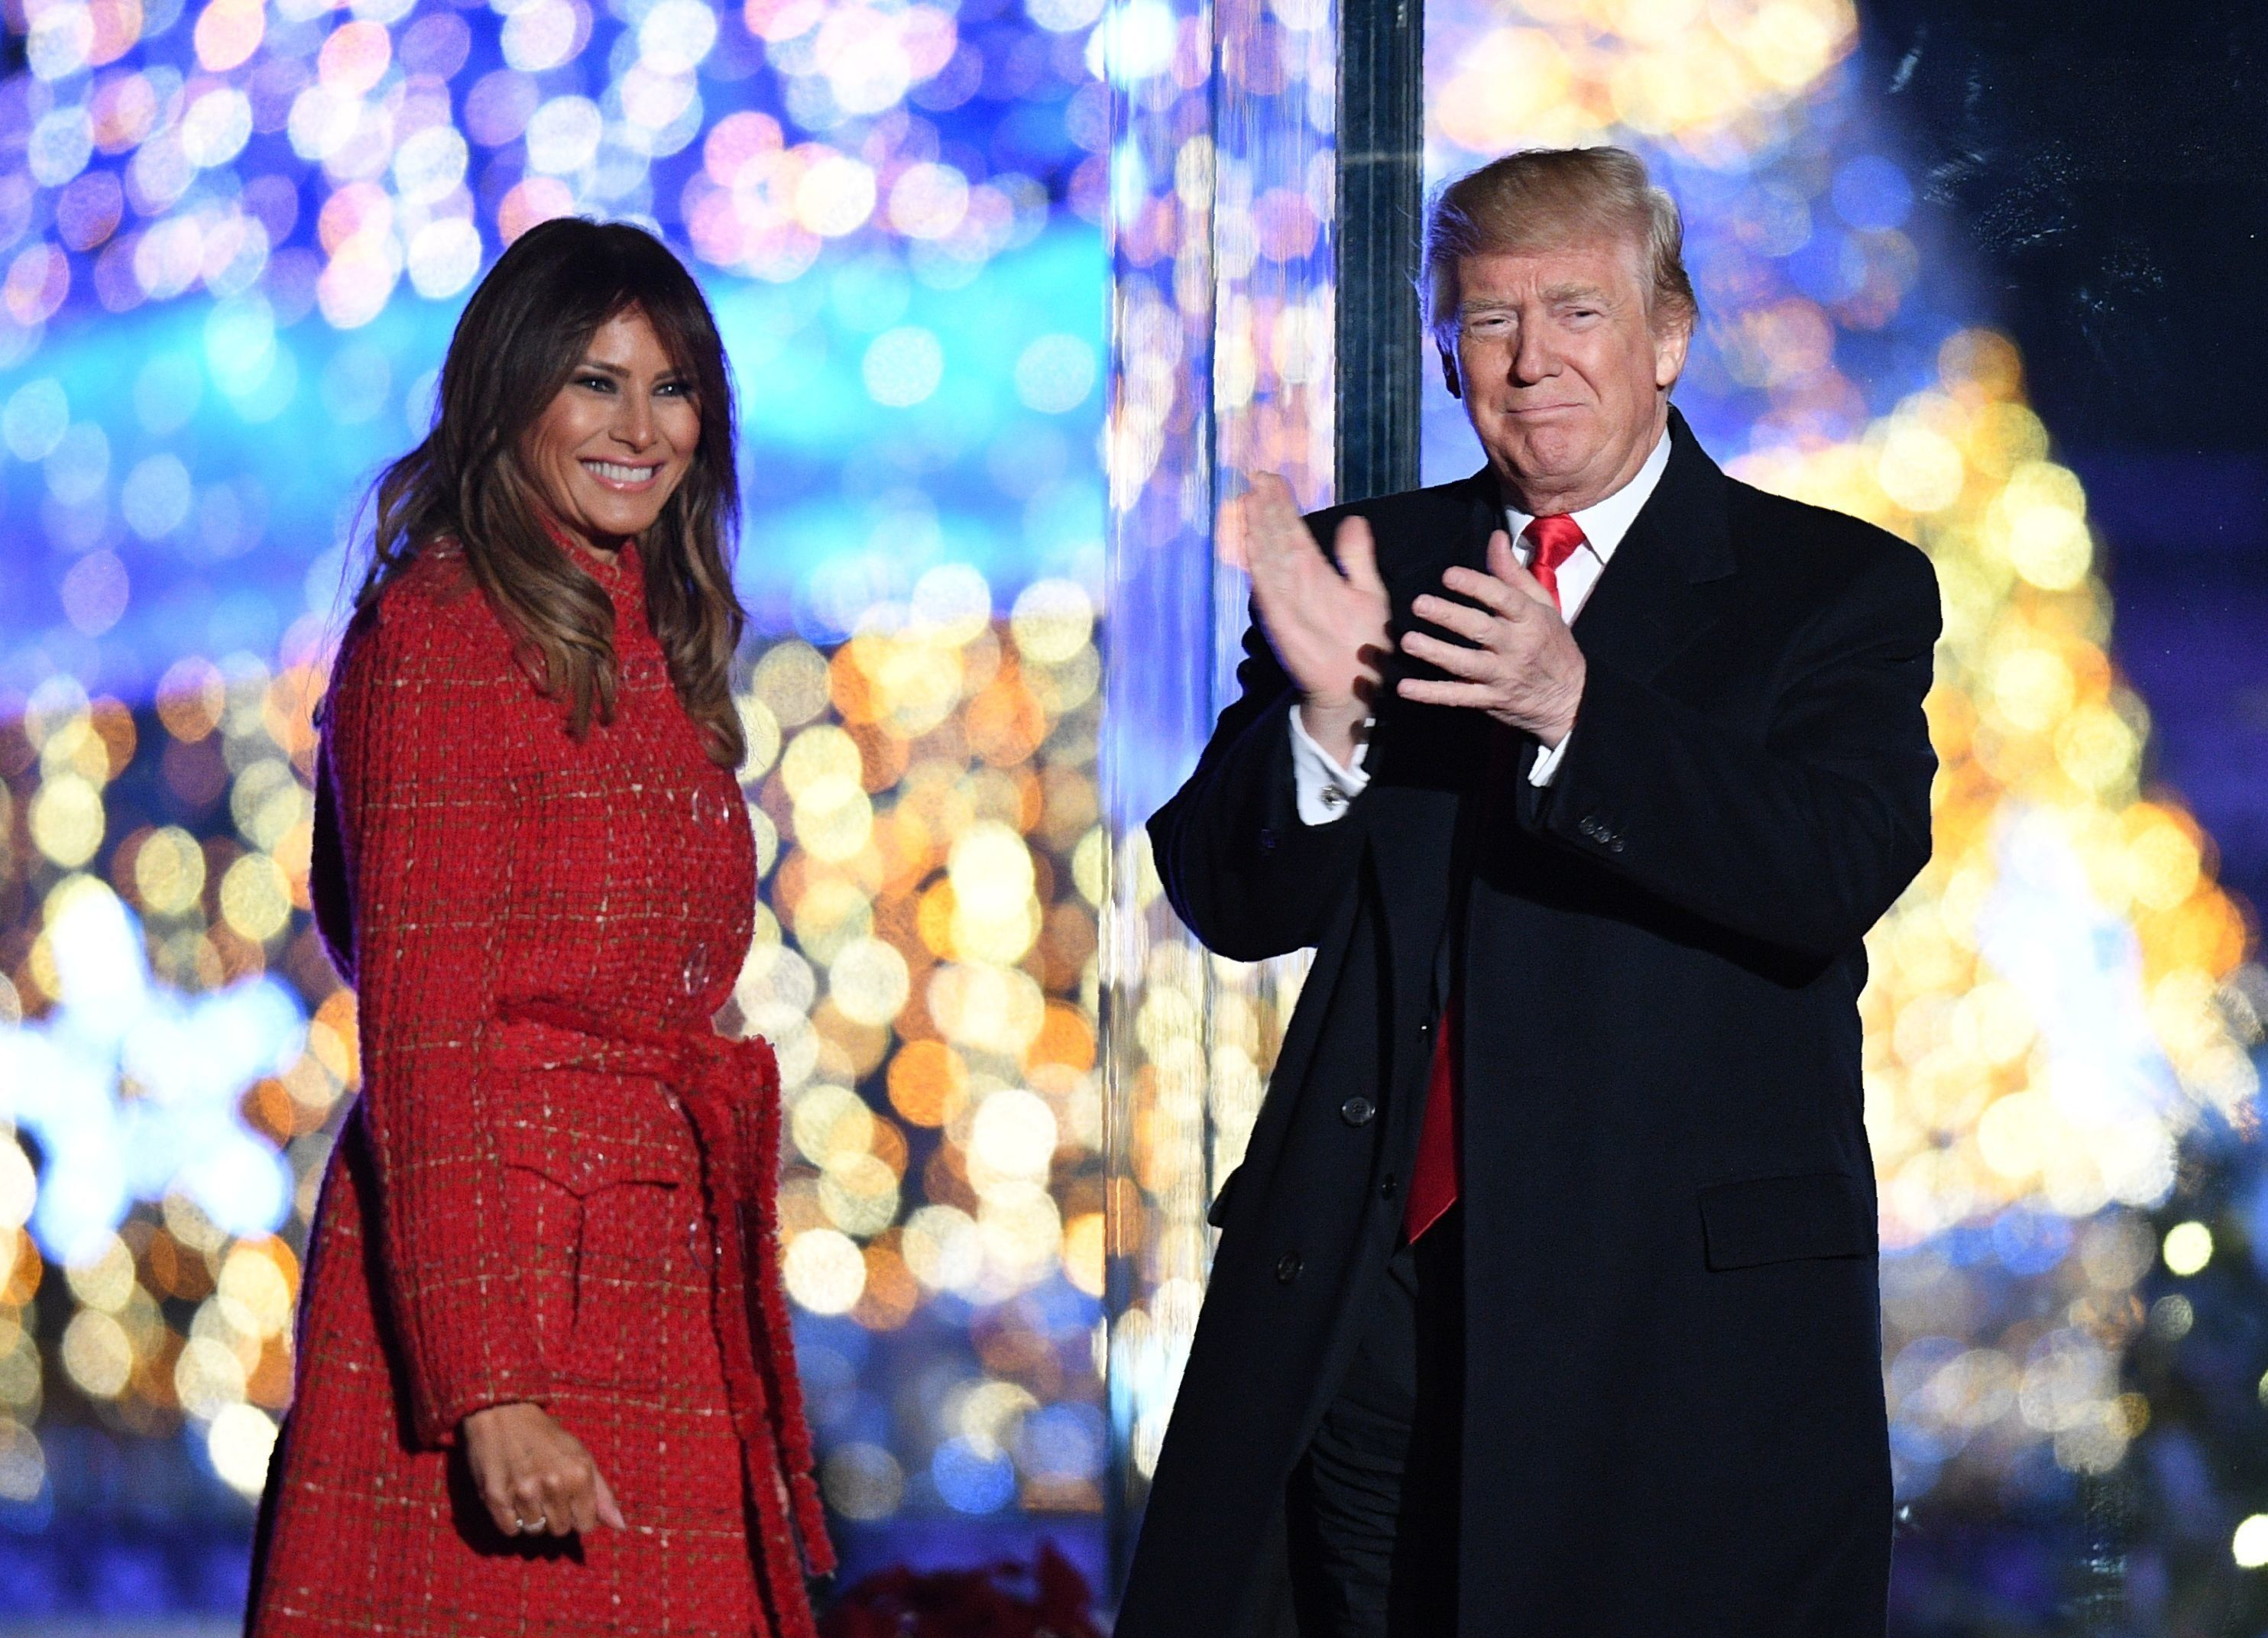 US President Donald Trump (R) gestures as First Lady Melania Trump smiles during the 95th annual National Christmas Tree Lighting ceremony at the Ellipse in President's Park near the White House in Washington, DC on November 30, 2017. / AFP PHOTO / JIM WATSON        (Photo credit should read JIM WATSON/AFP/Getty Images)